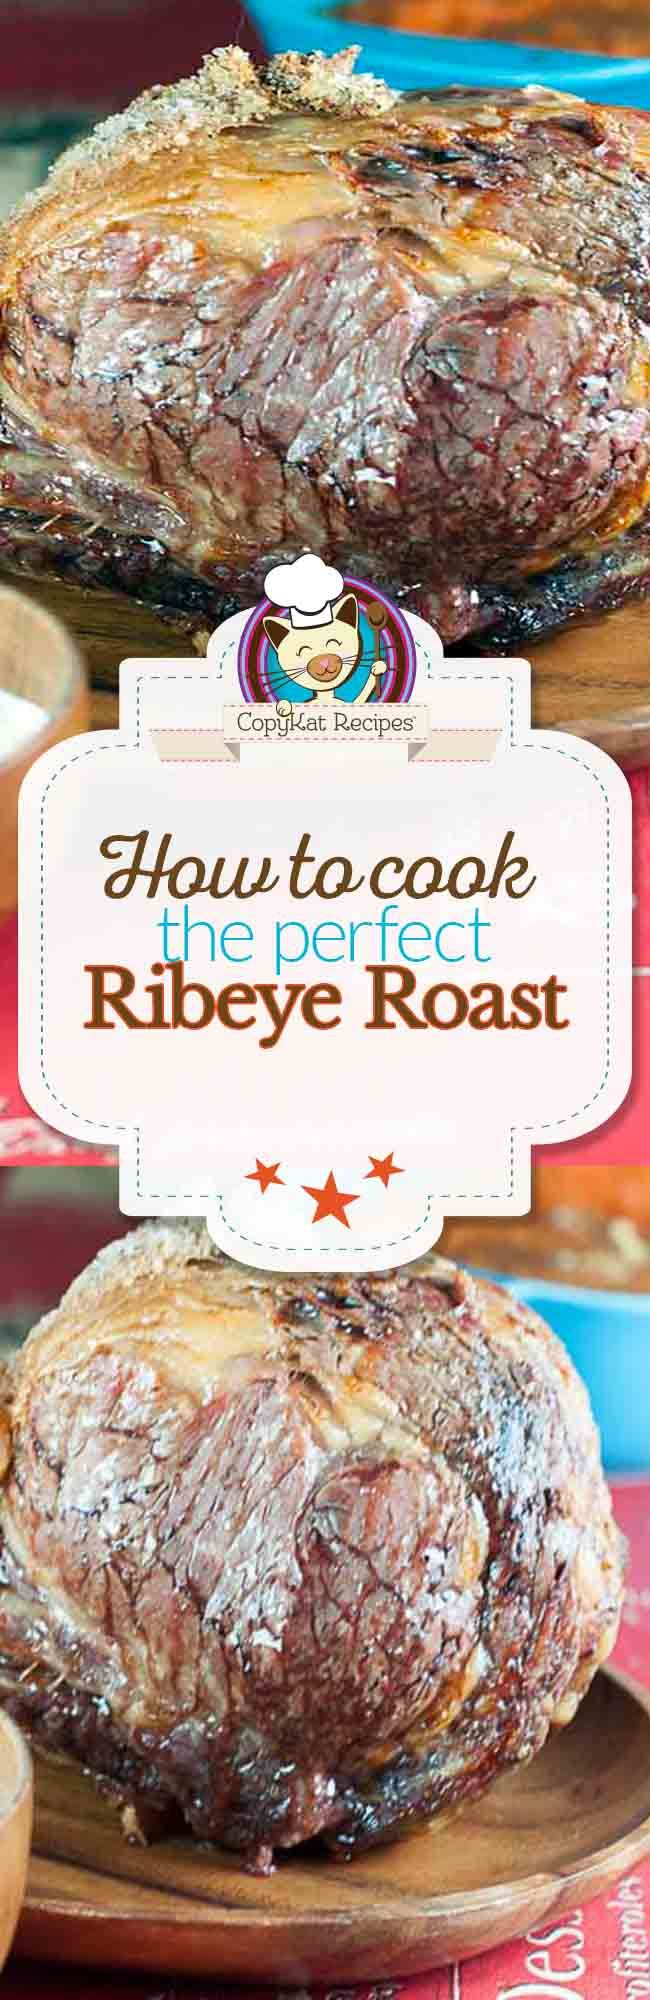 I love this tutorial for How to Cook a Ribeye Roast. So yummy sounding.